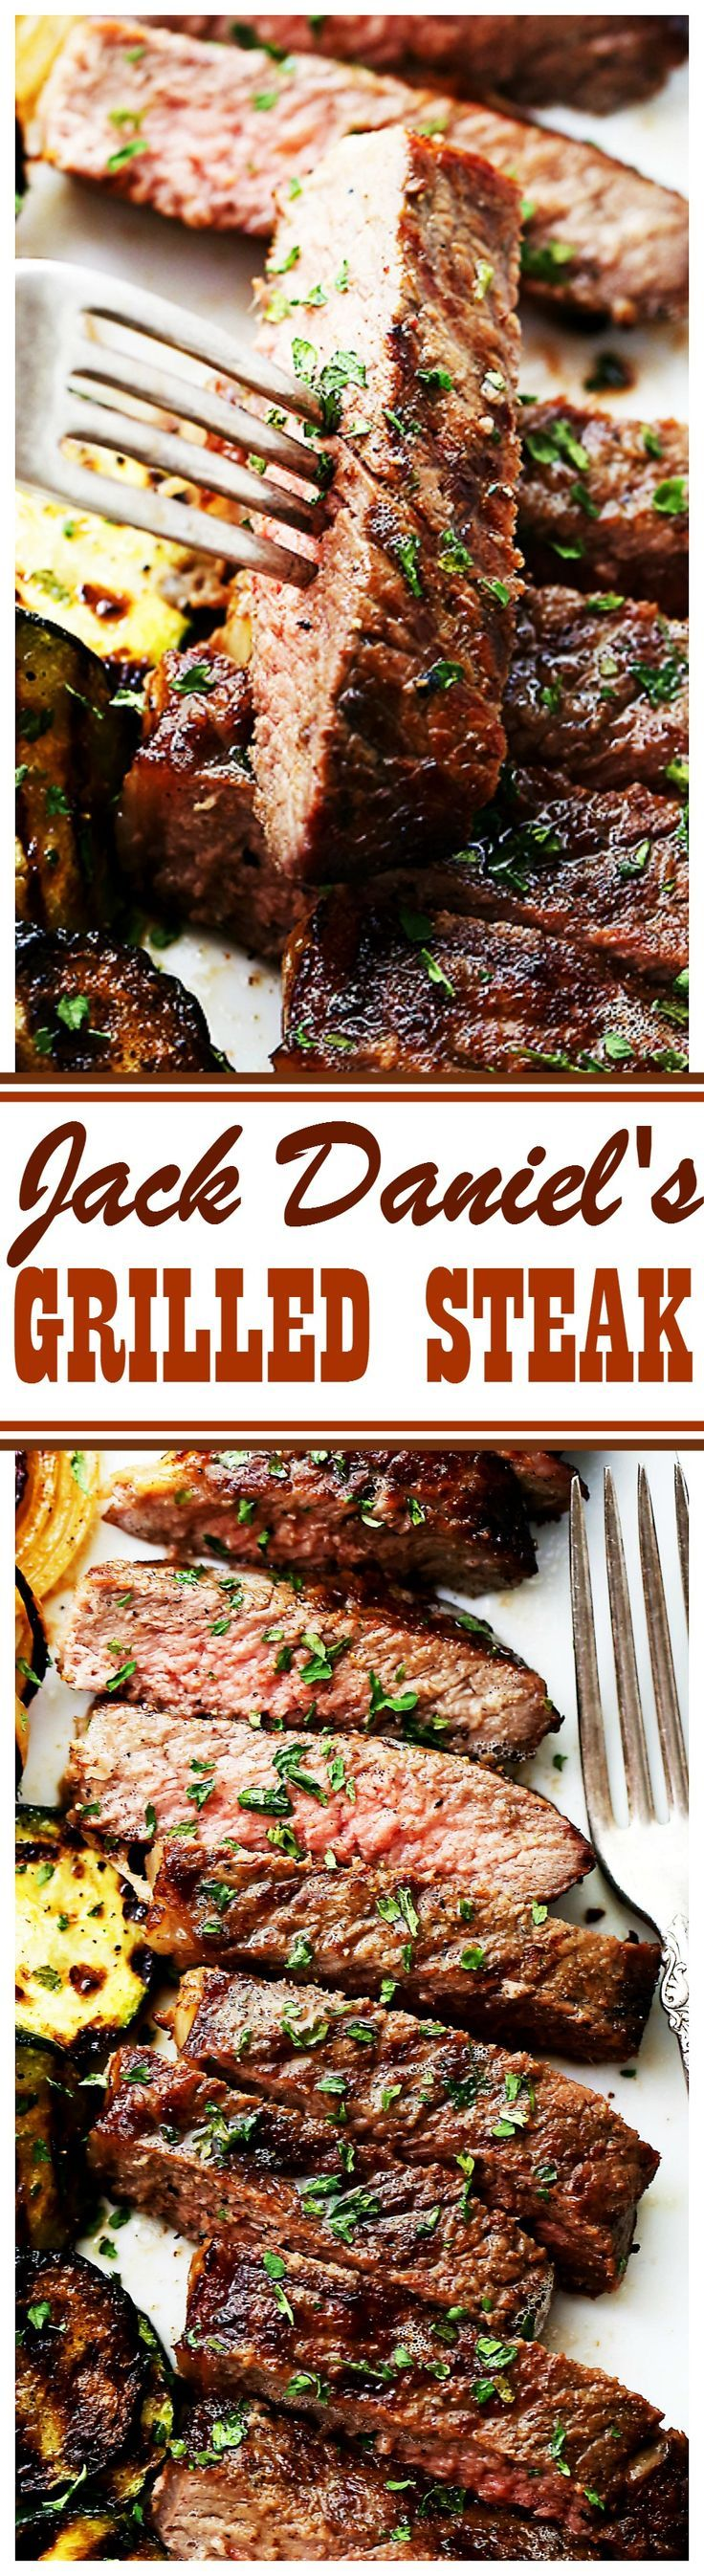 Jack Daniel's Grilled Steak Recipe - Diethood - http://doctorforlove.info/jack-daniels-grilled-steak-recipe-diethood